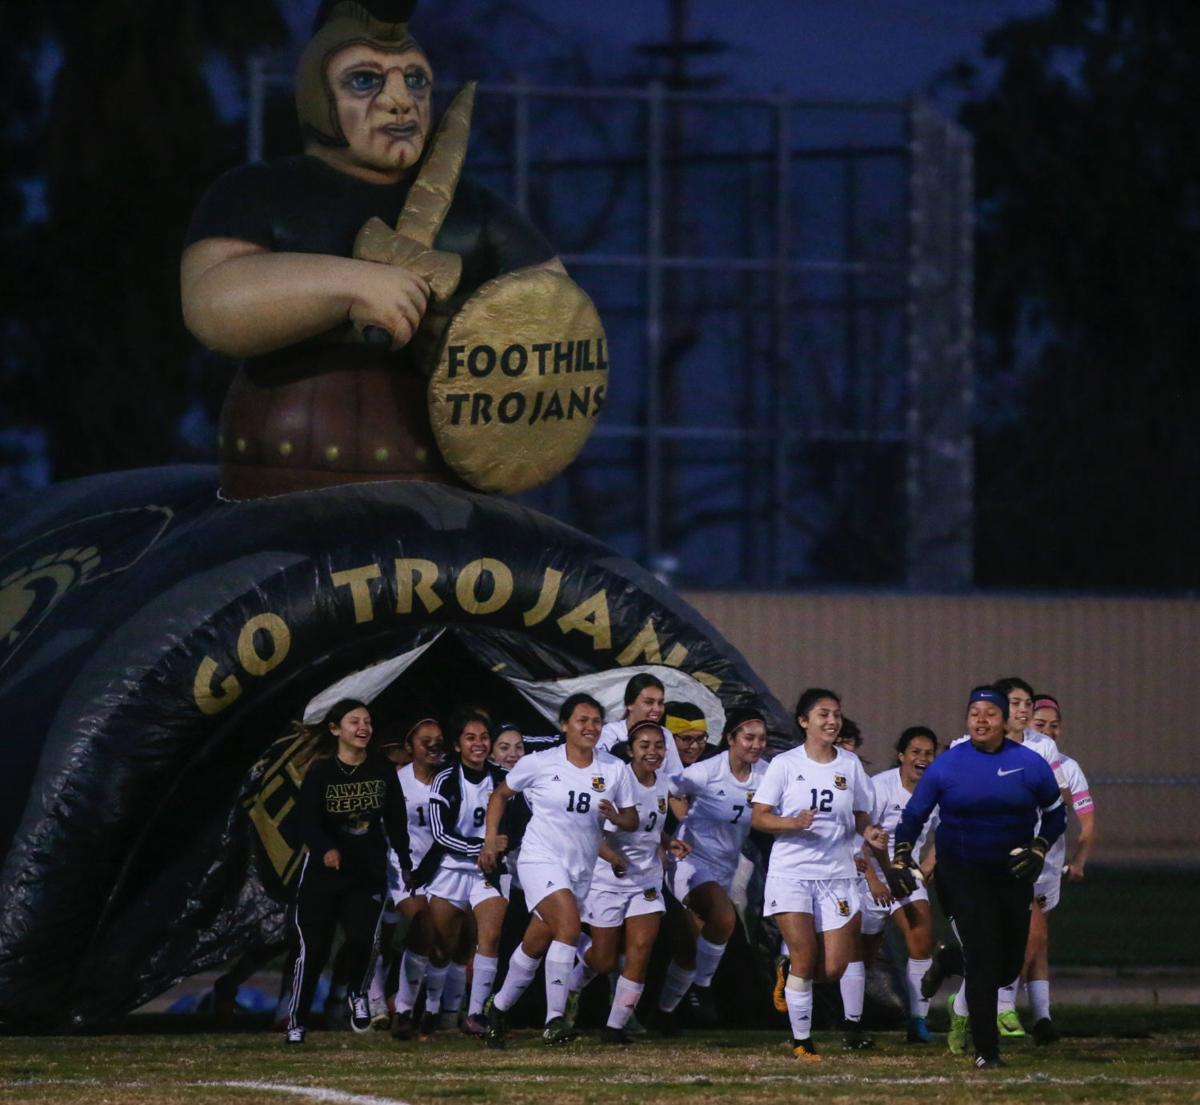 foothill6